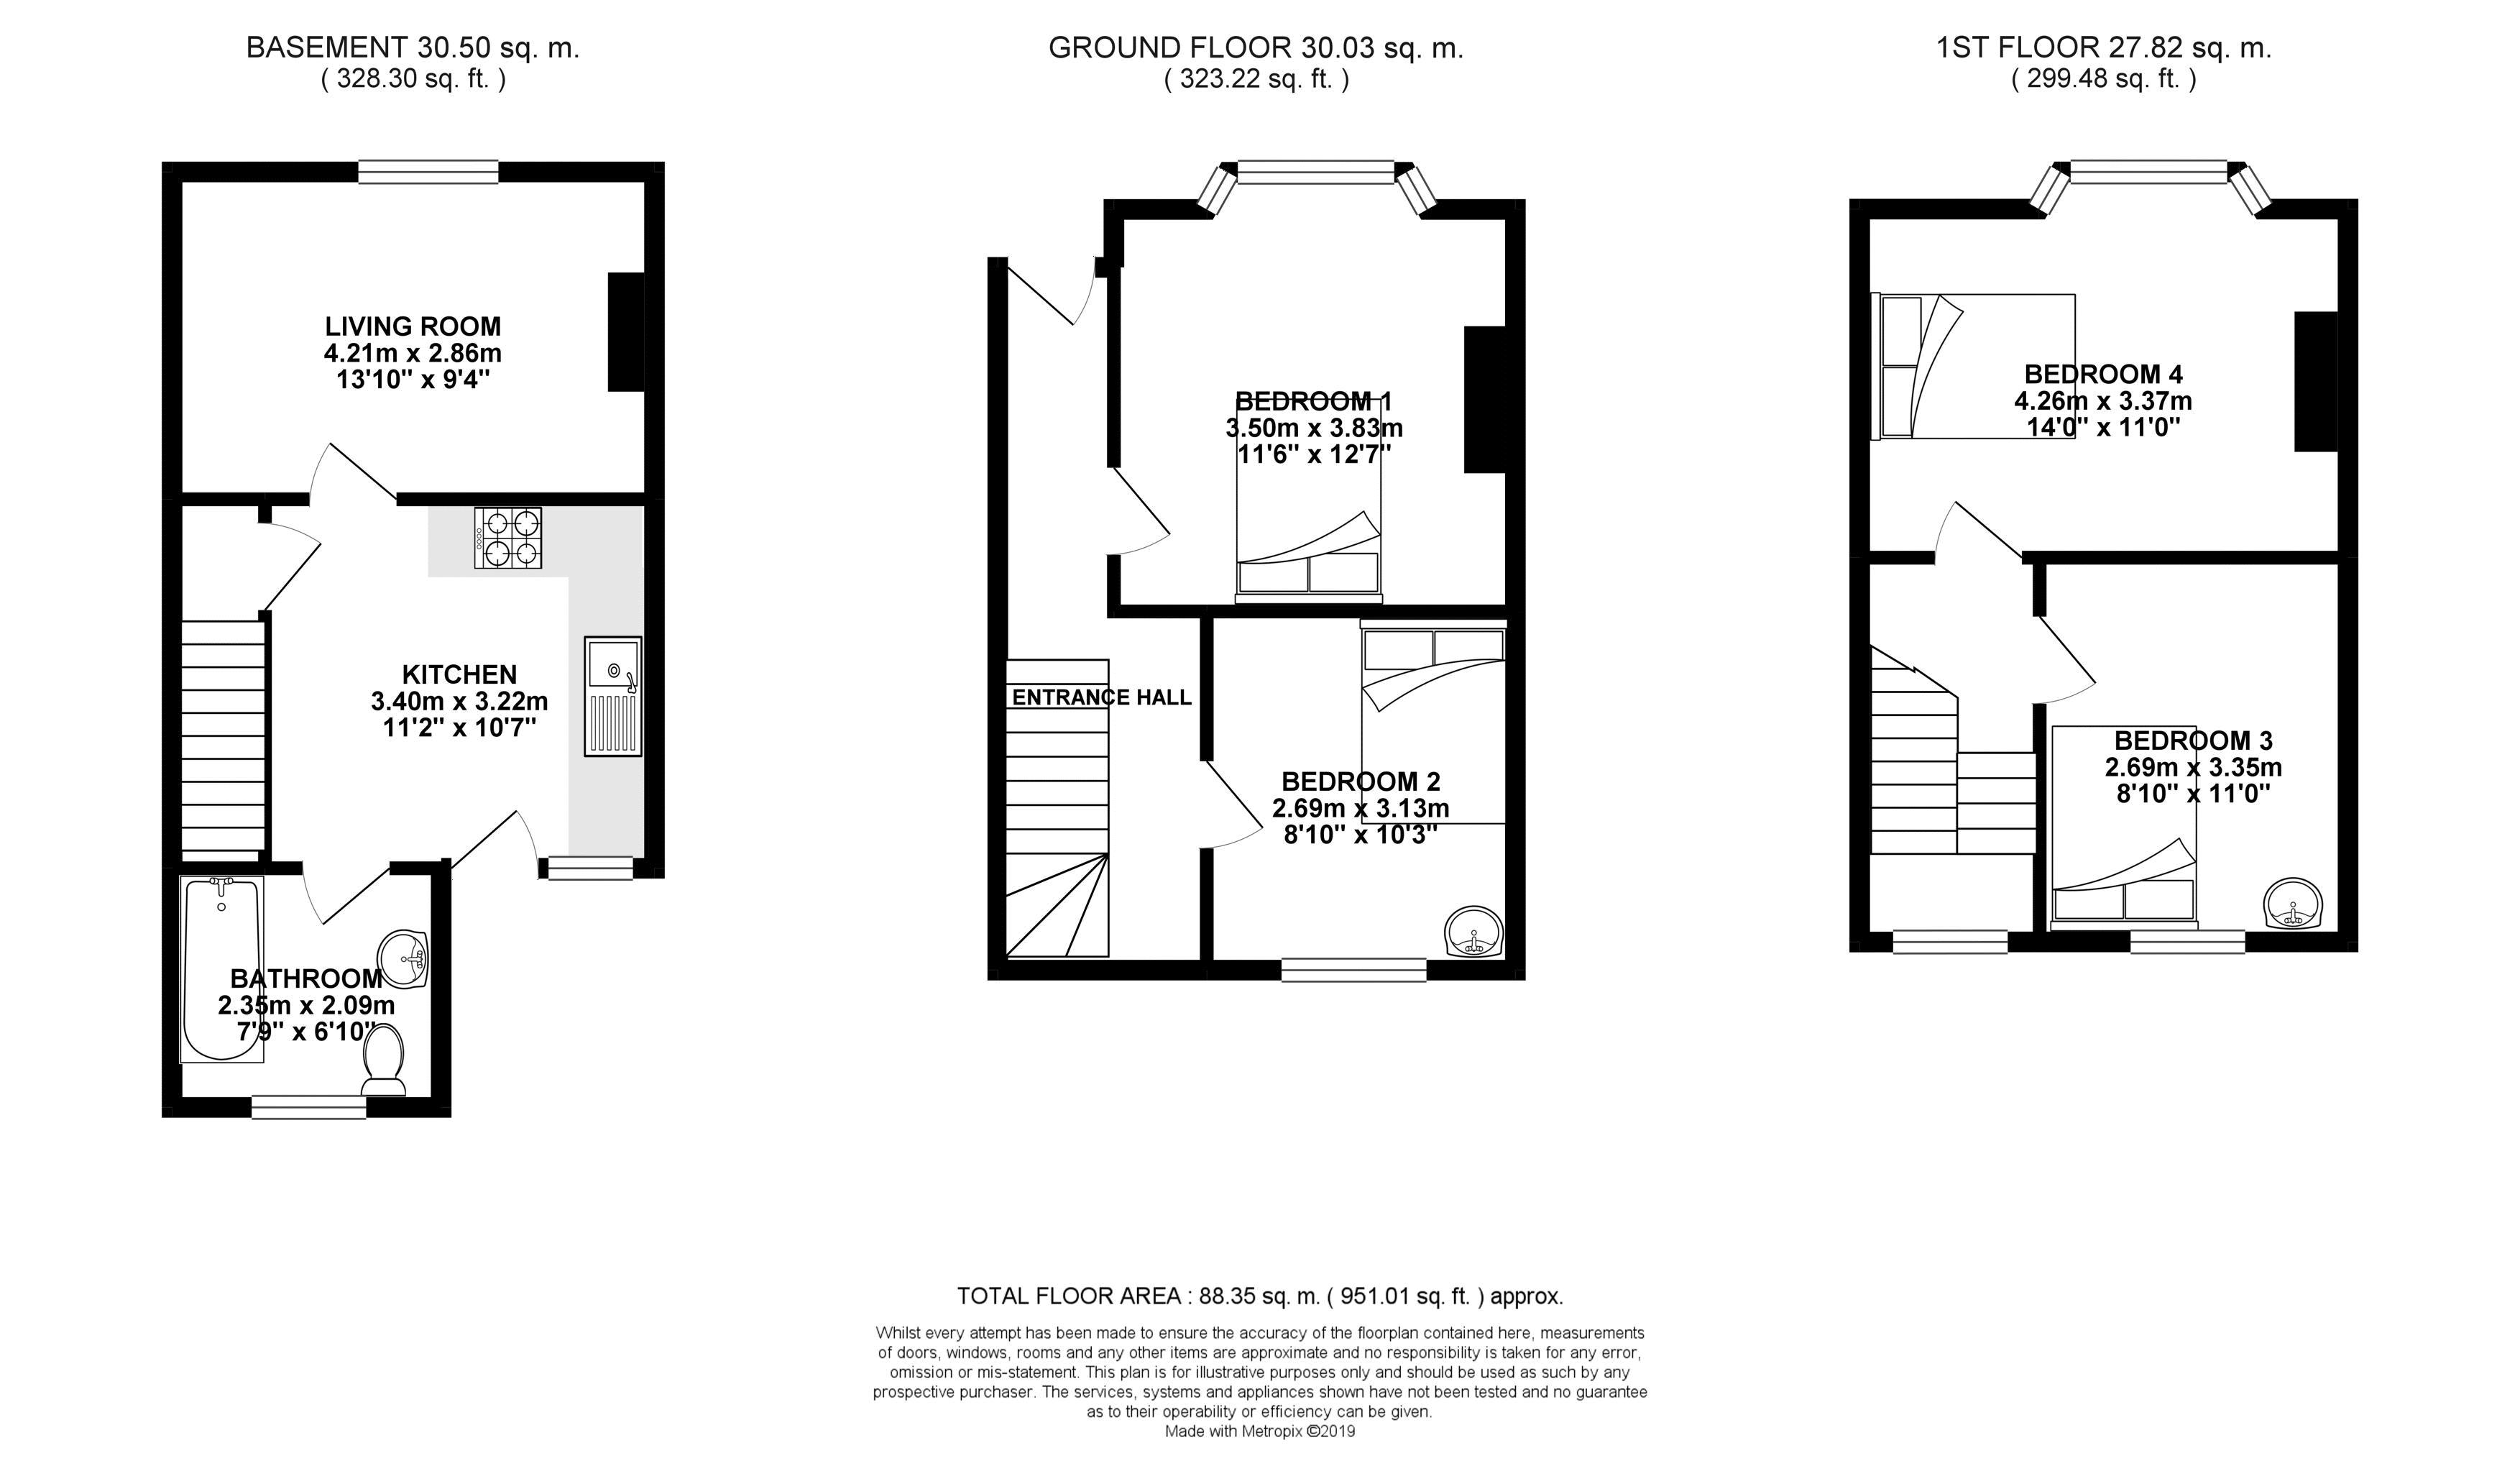 Floor plans for St. Pauls Street, Brighton property for sale in Lewes Road South, Brighton by Coapt